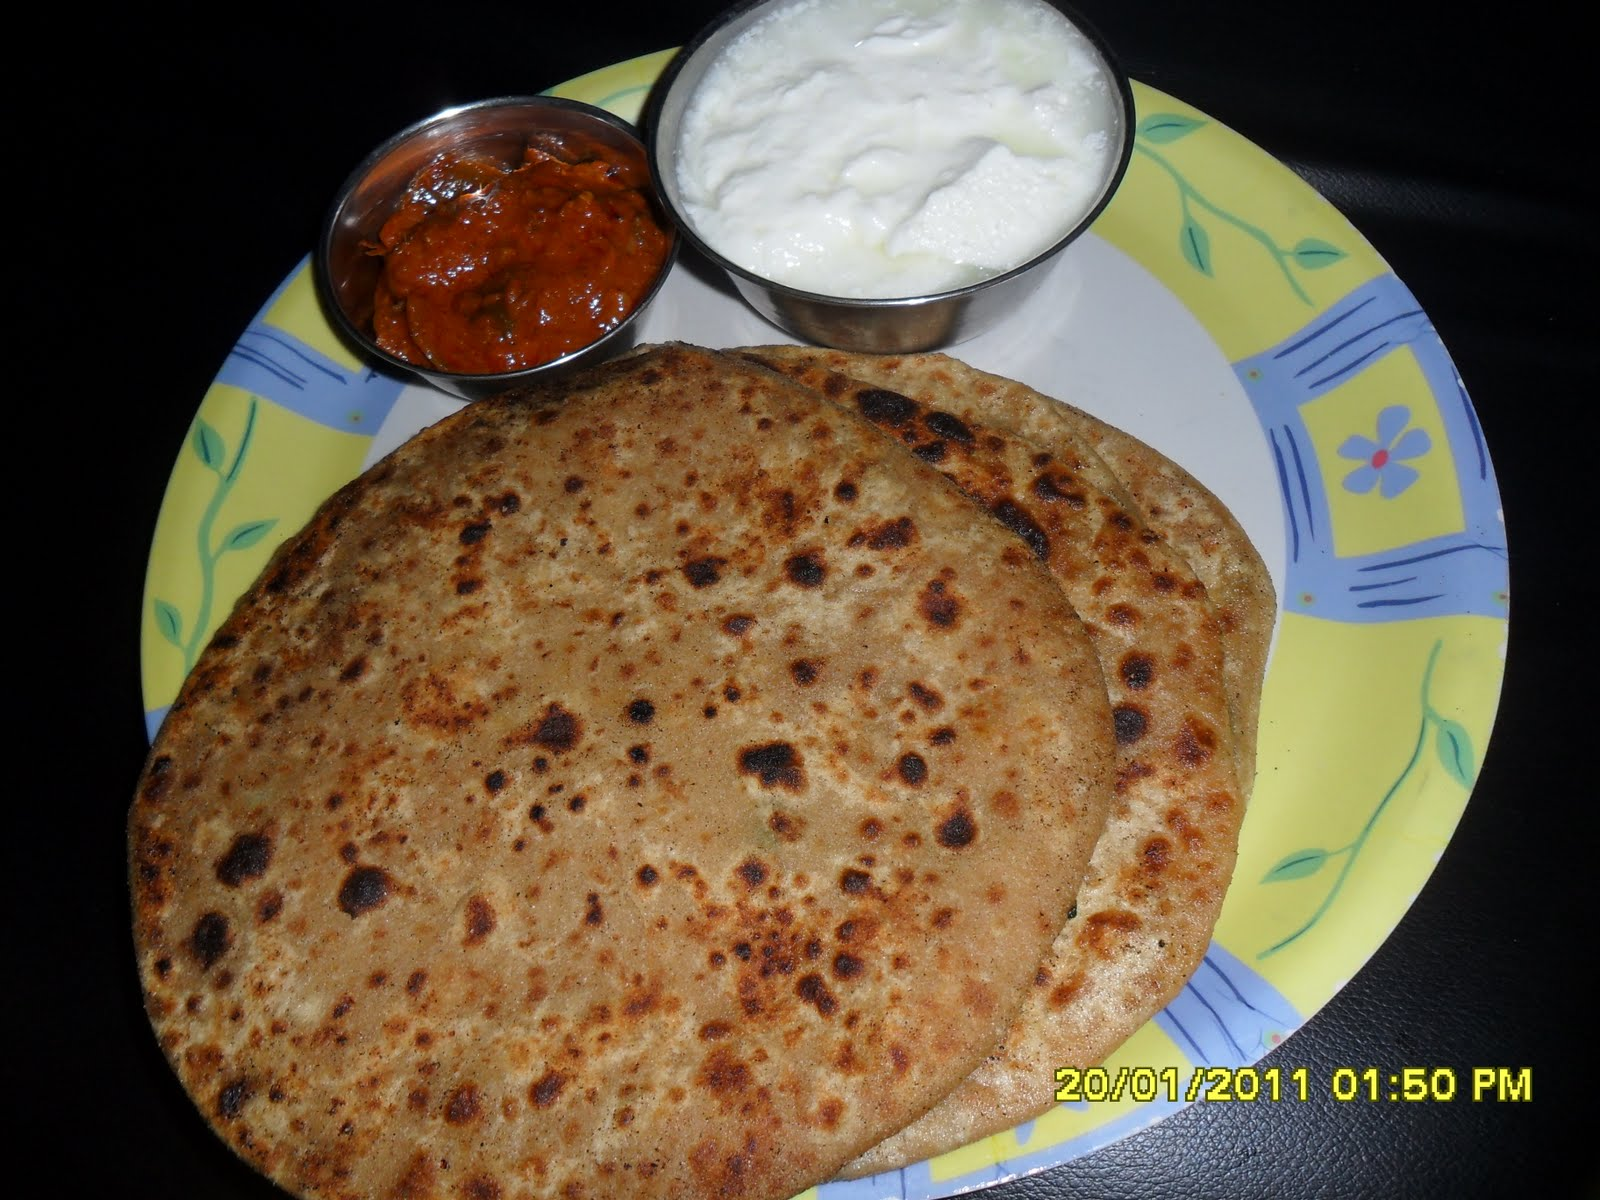 images of indian food items - photo #4